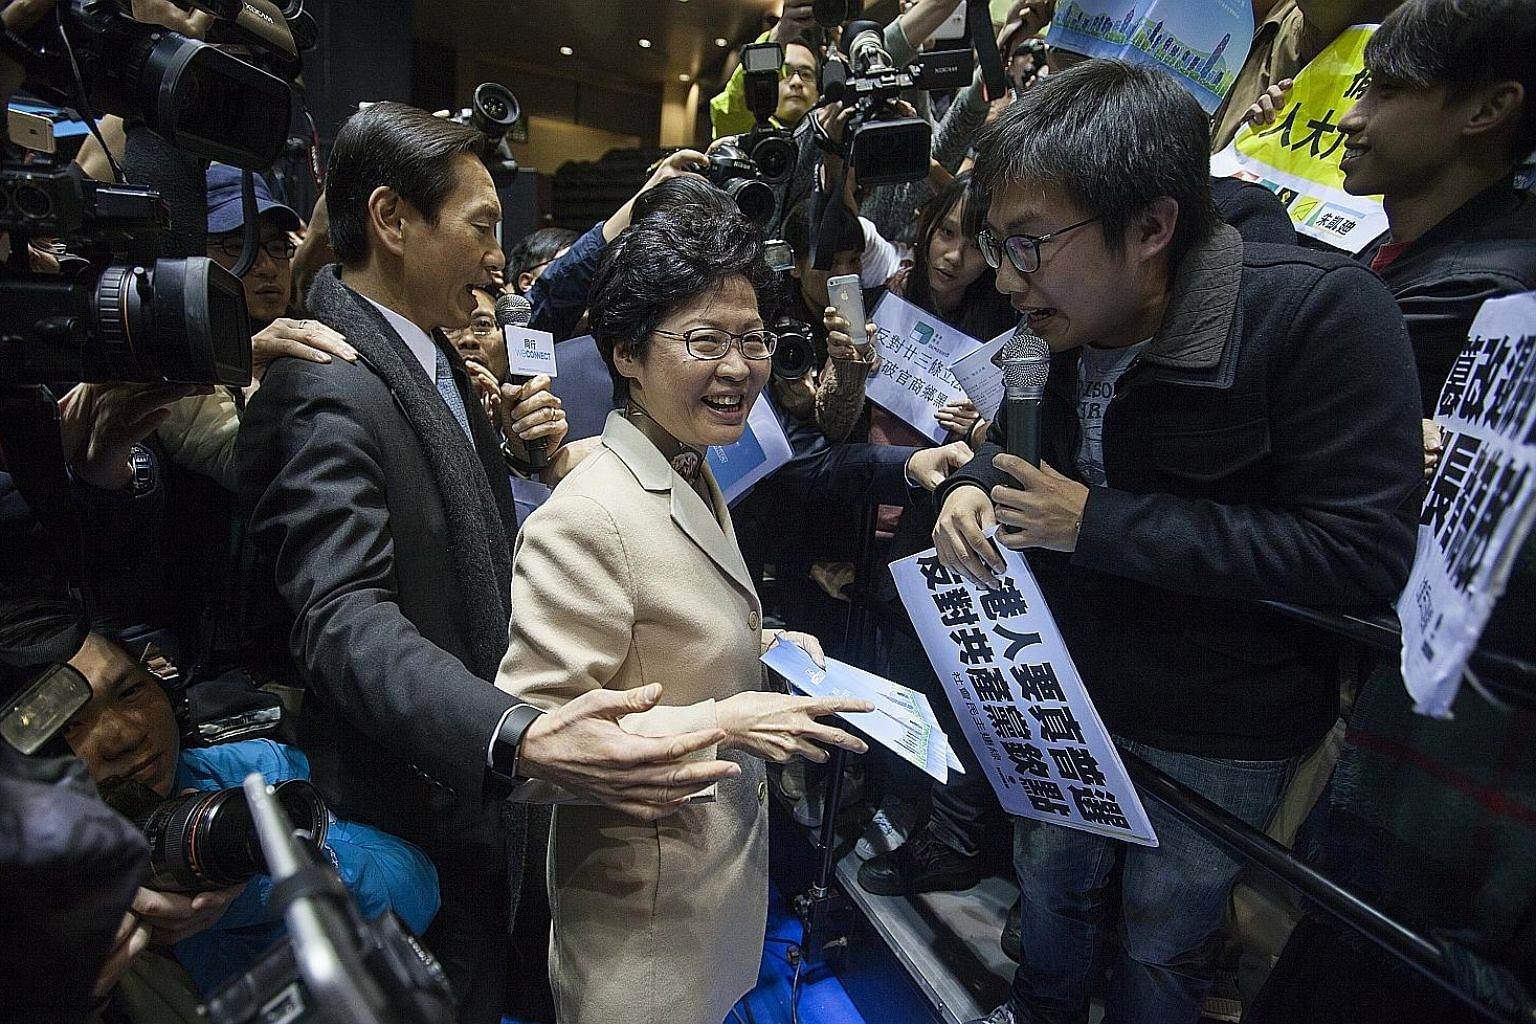 Mrs Lam, the leading candidate to be Hong Kong's next chief executive, facing off against pro-democracy protesters calling for real universal suffrage after launching her policy platform yesterday.